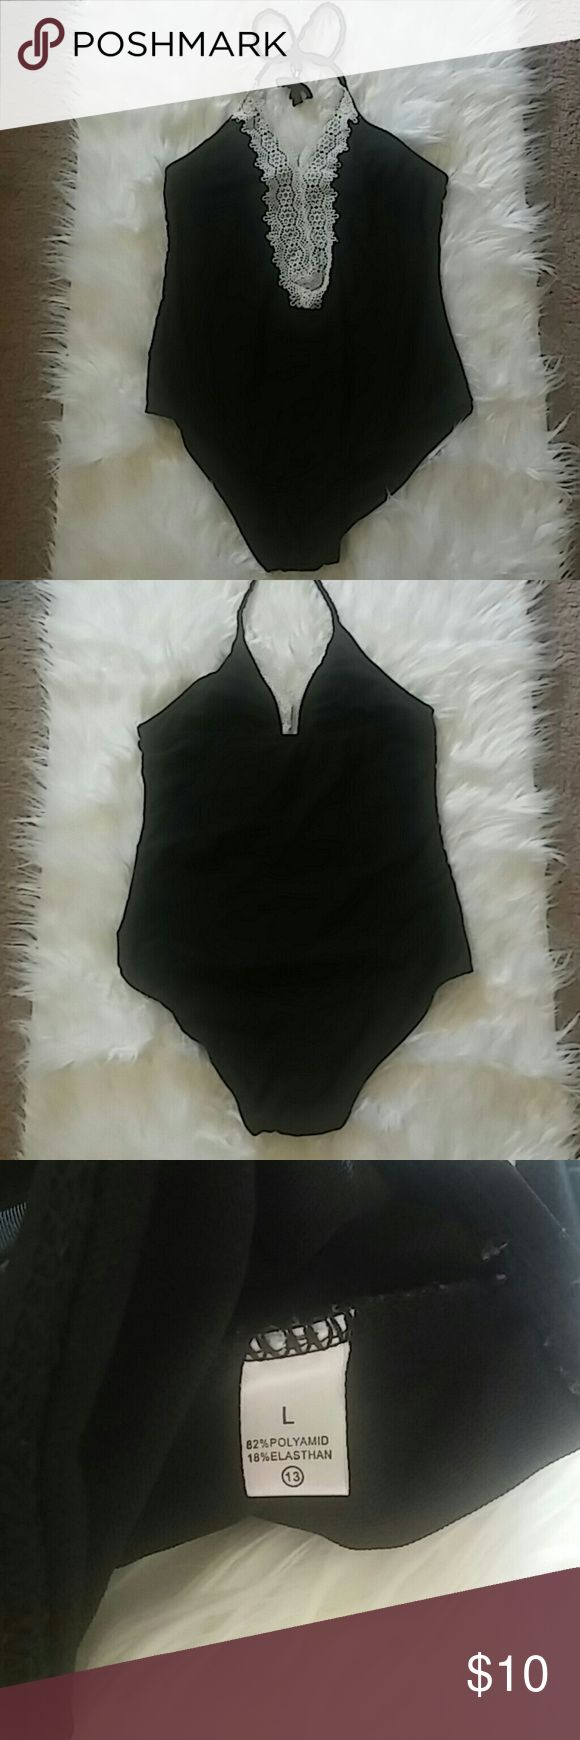 Women's one piece halter bathing suit This super cute never been worn one piece is flattering for all body types! The cute lace decorations give the swimsuit an extra touch. Swim One Pieces